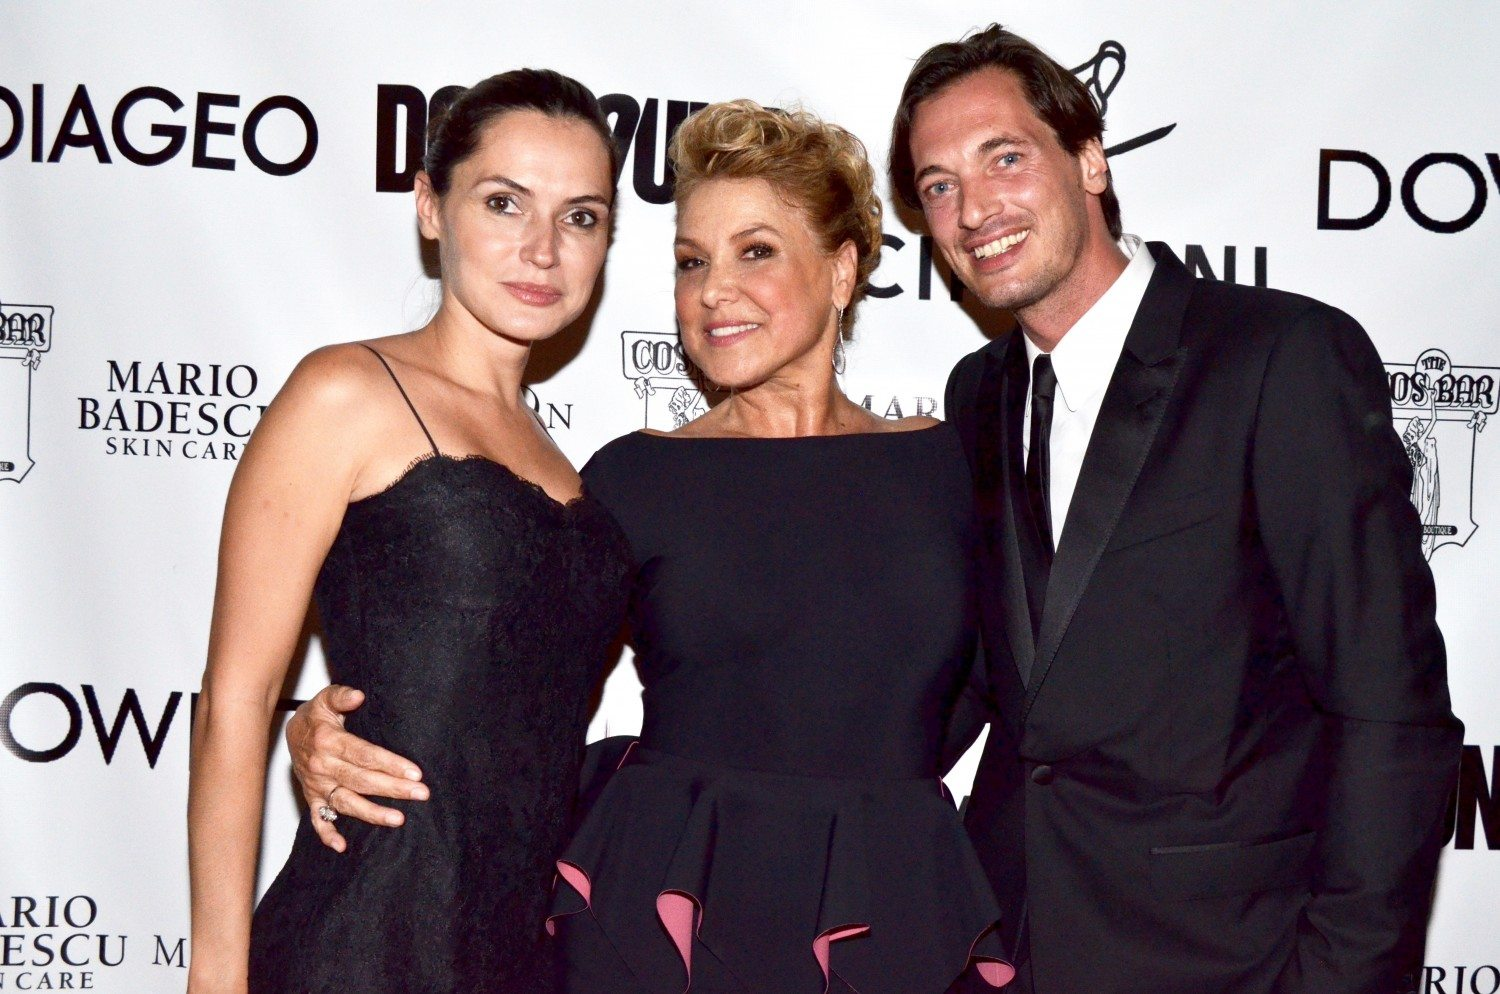 Marina Barlage, Grace A. Capobianco and Philippe Reynaud